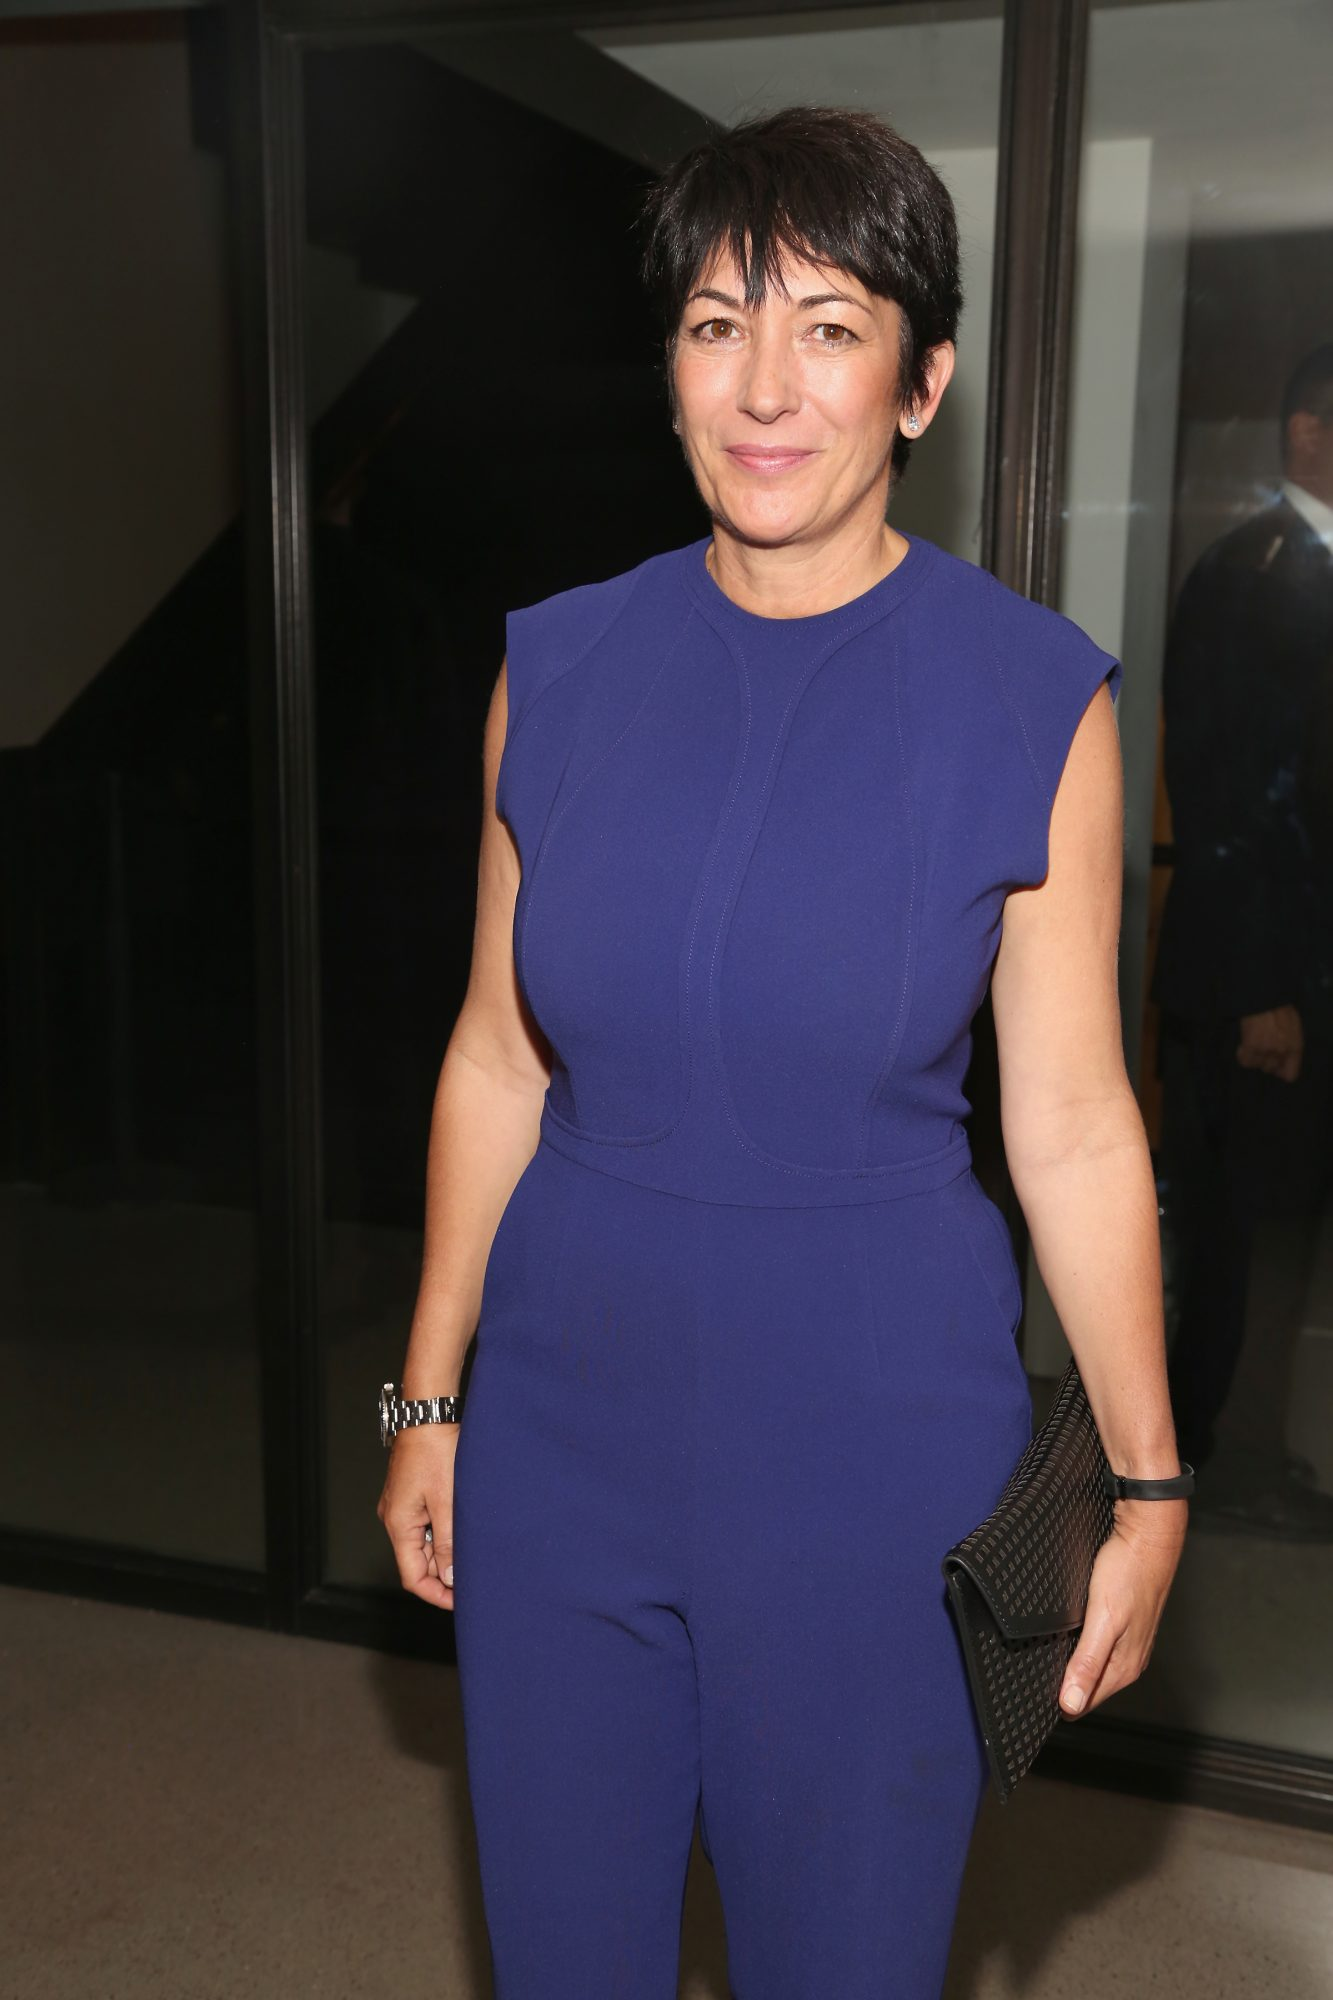 Ghislaine Maxwell Pleads Not Guilty and Is Denied Bail